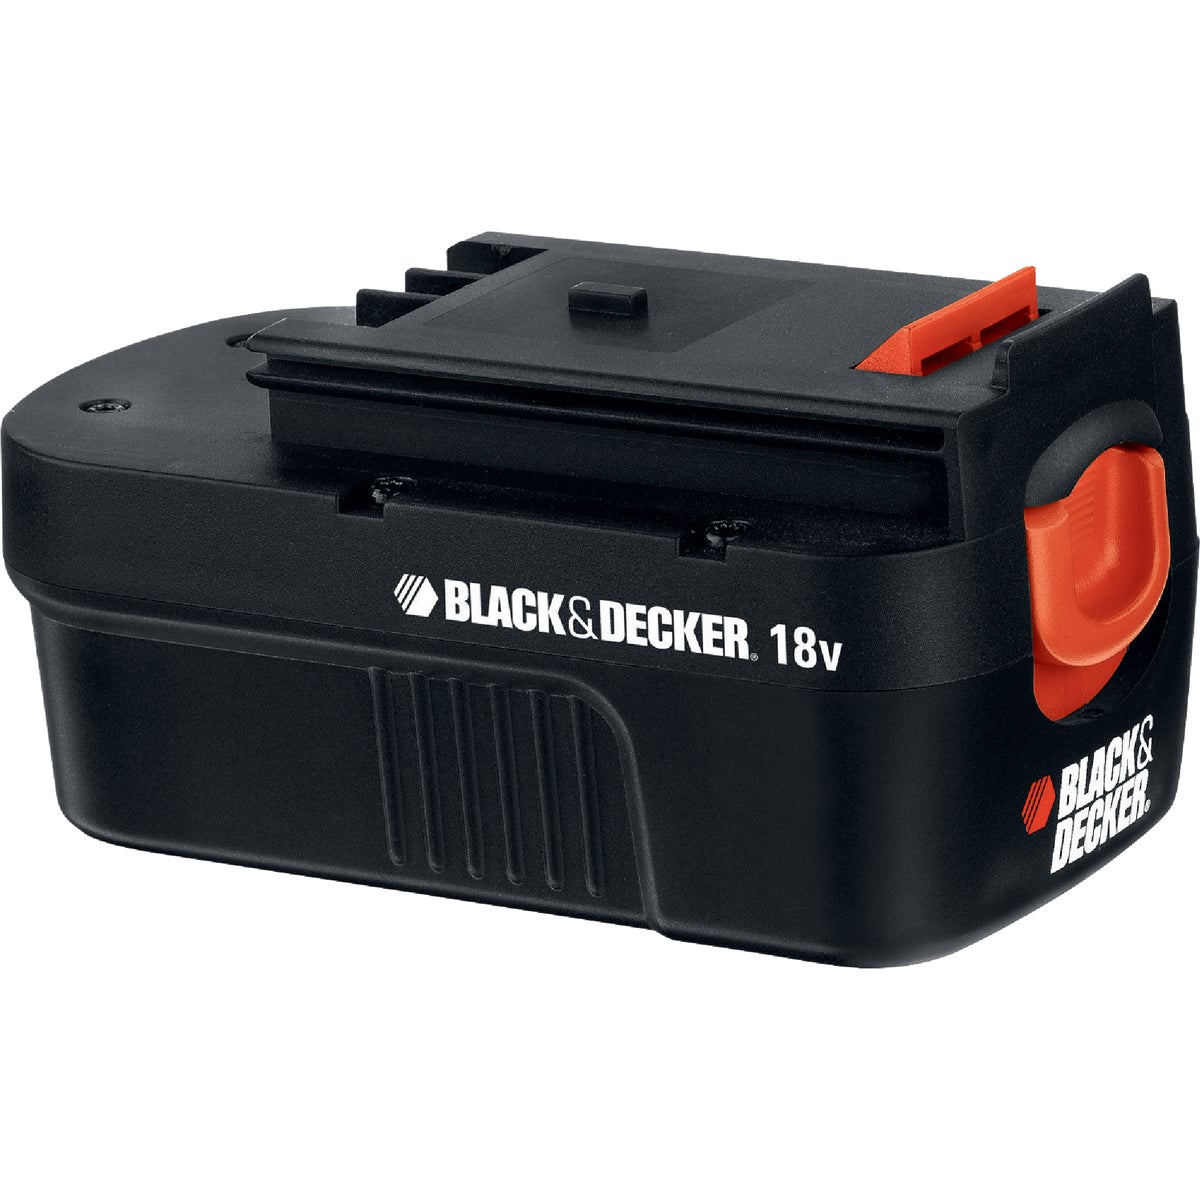 18V BATTERY PACK - HPB18 by Black & Decker